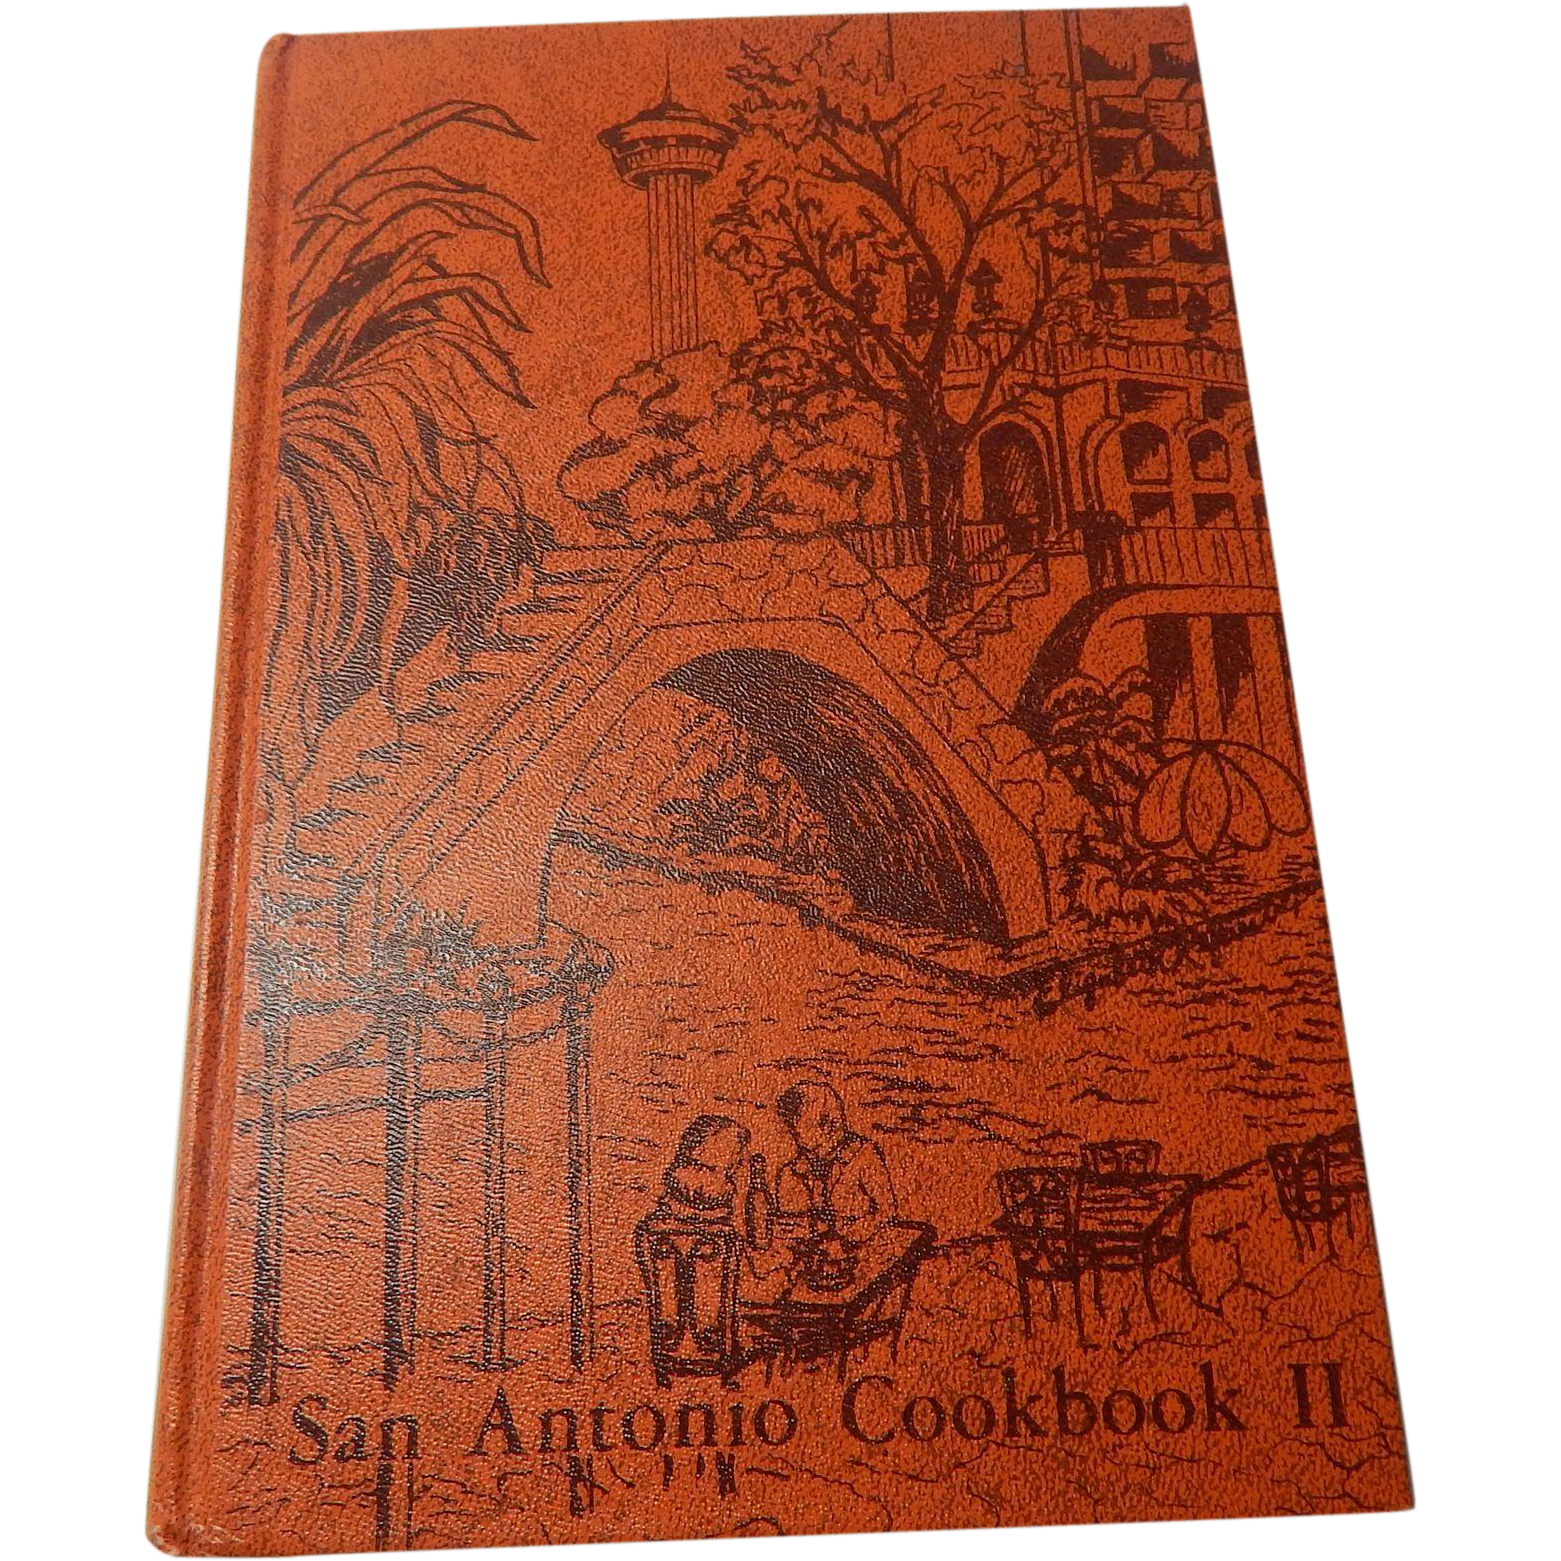 San Antonio Cookbook II 1980